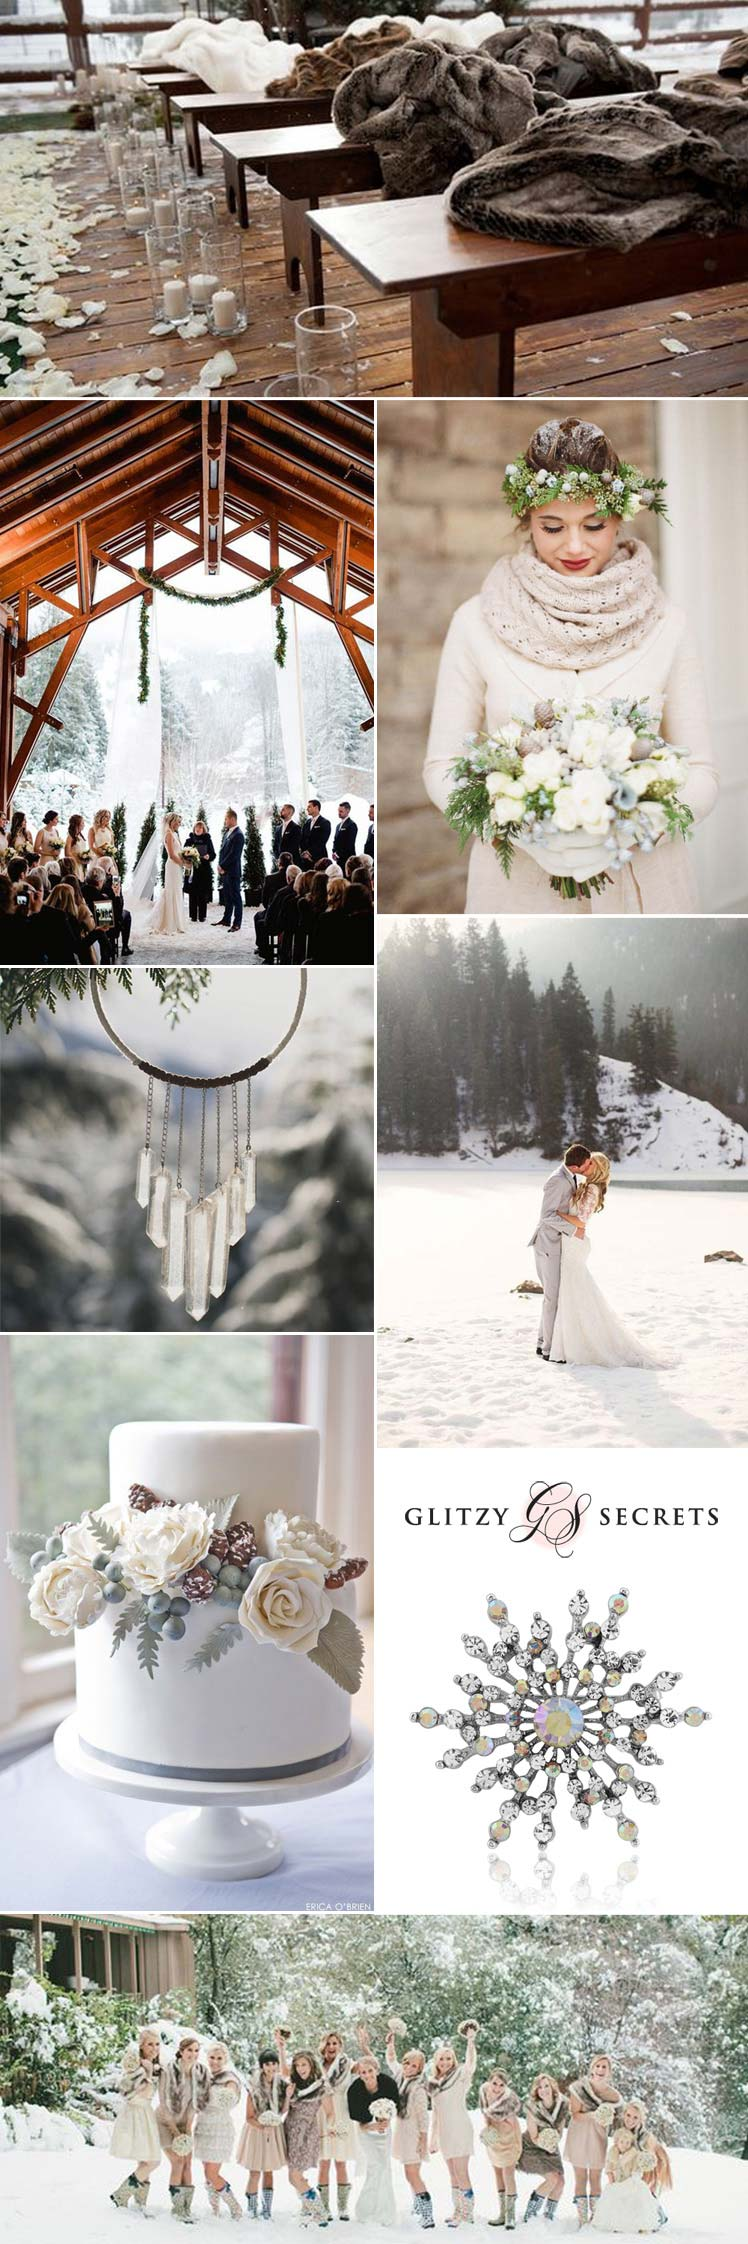 Ideas for a beautiful snow wedding theme